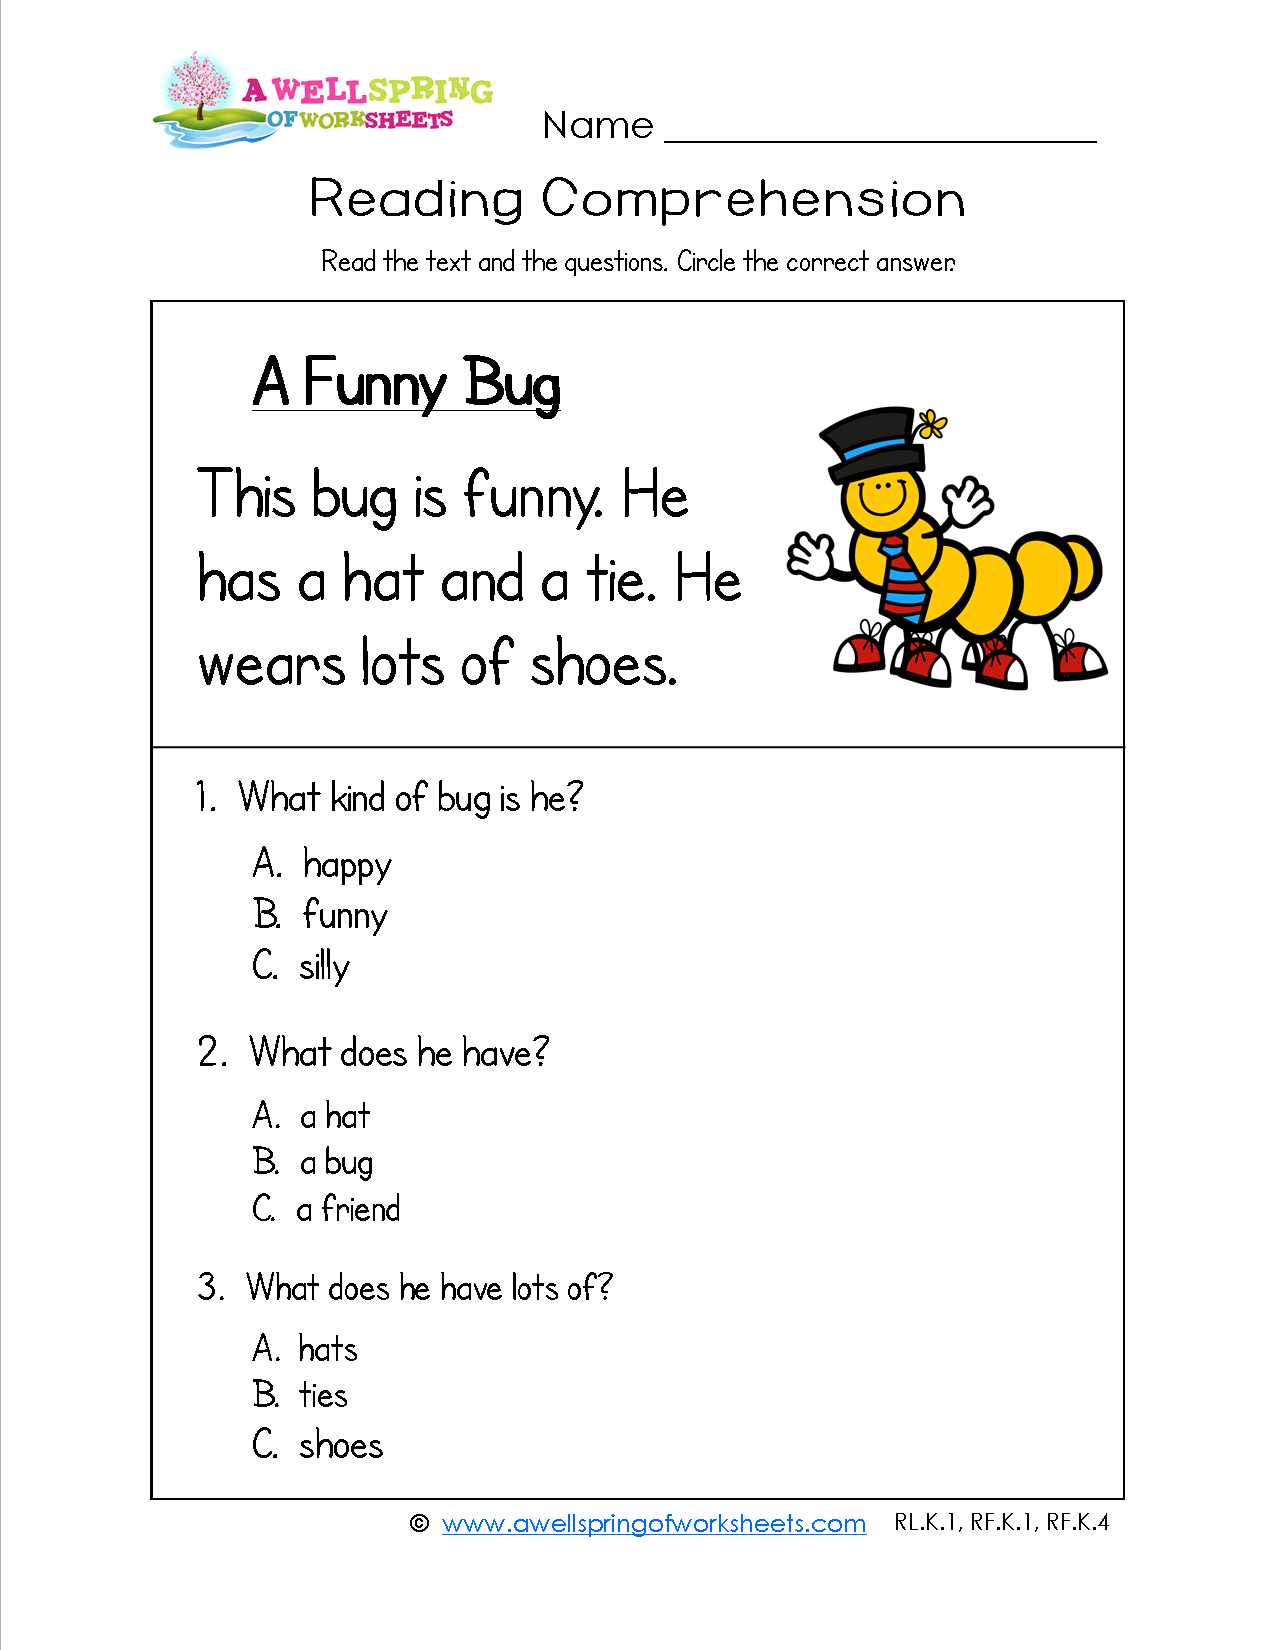 worksheet Bug Worksheets For Kindergarten grade level worksheets kindergarten reading comprehension a wellspring of worksheets